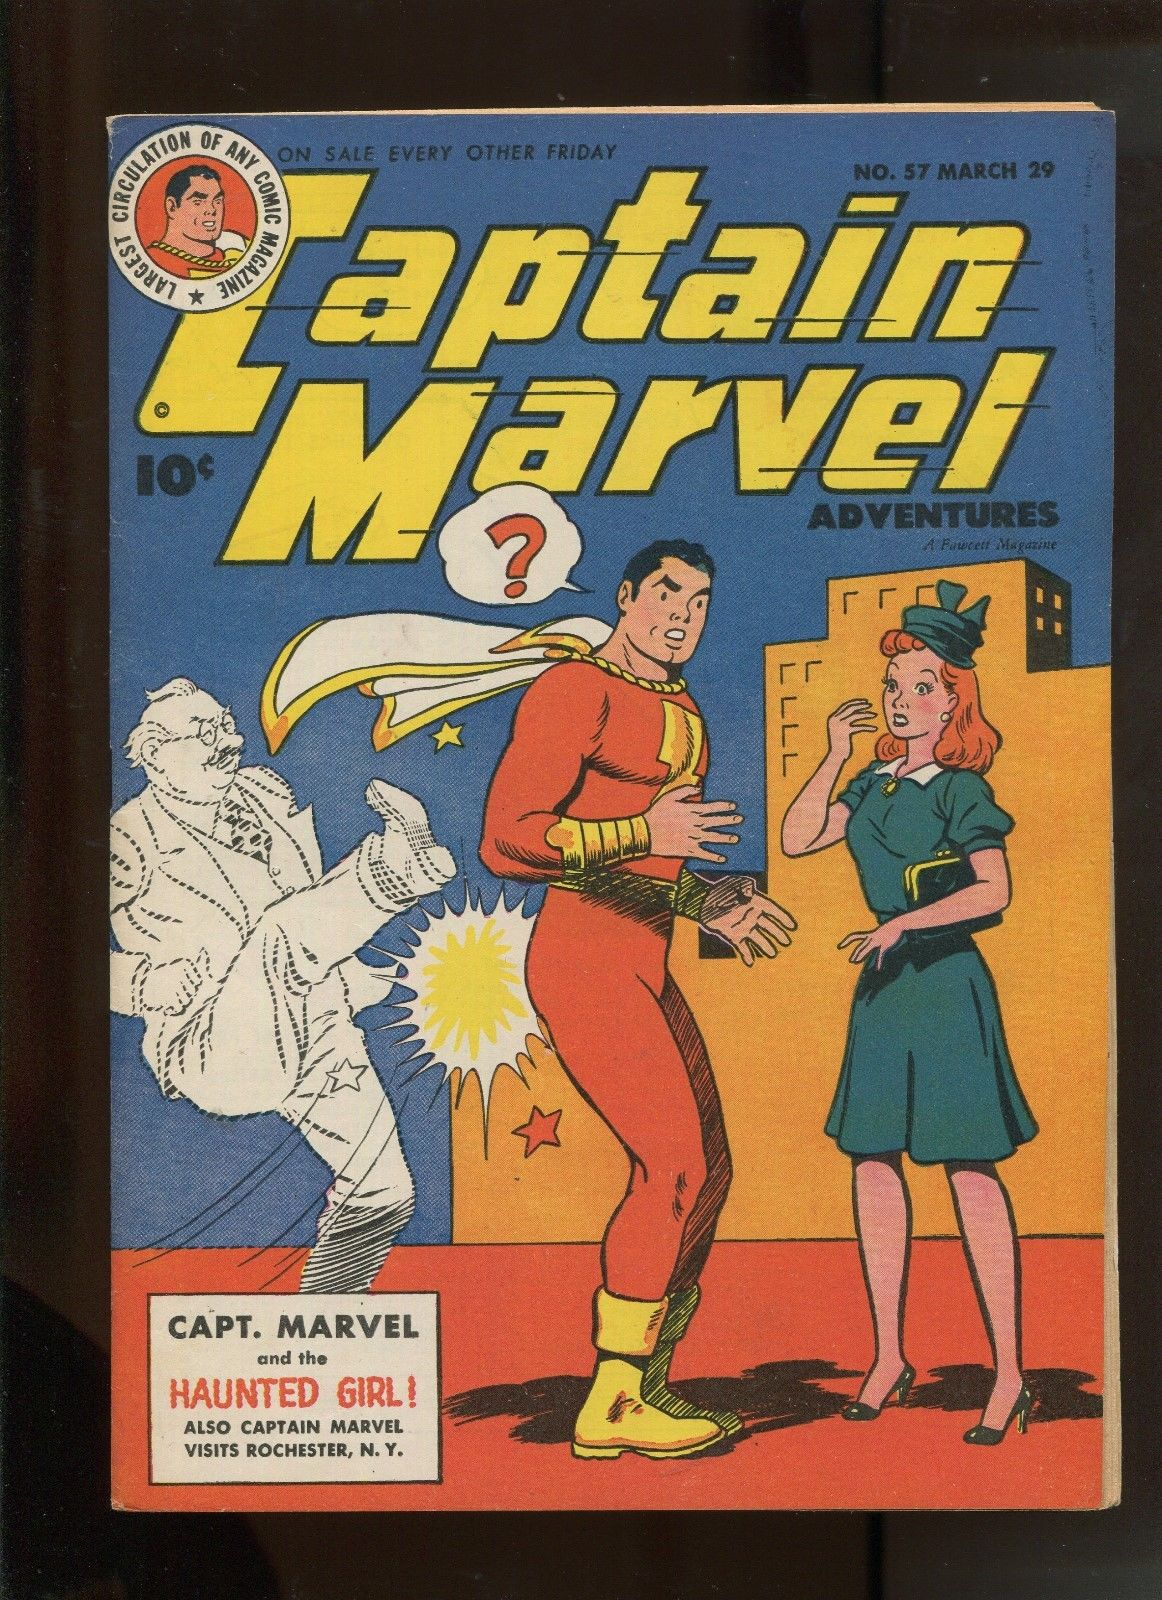 CAPTAIN MARVEL ADVENTURES #57 (7.0) CAPTAIN MARVEL AND THE HAUNTED GIRL